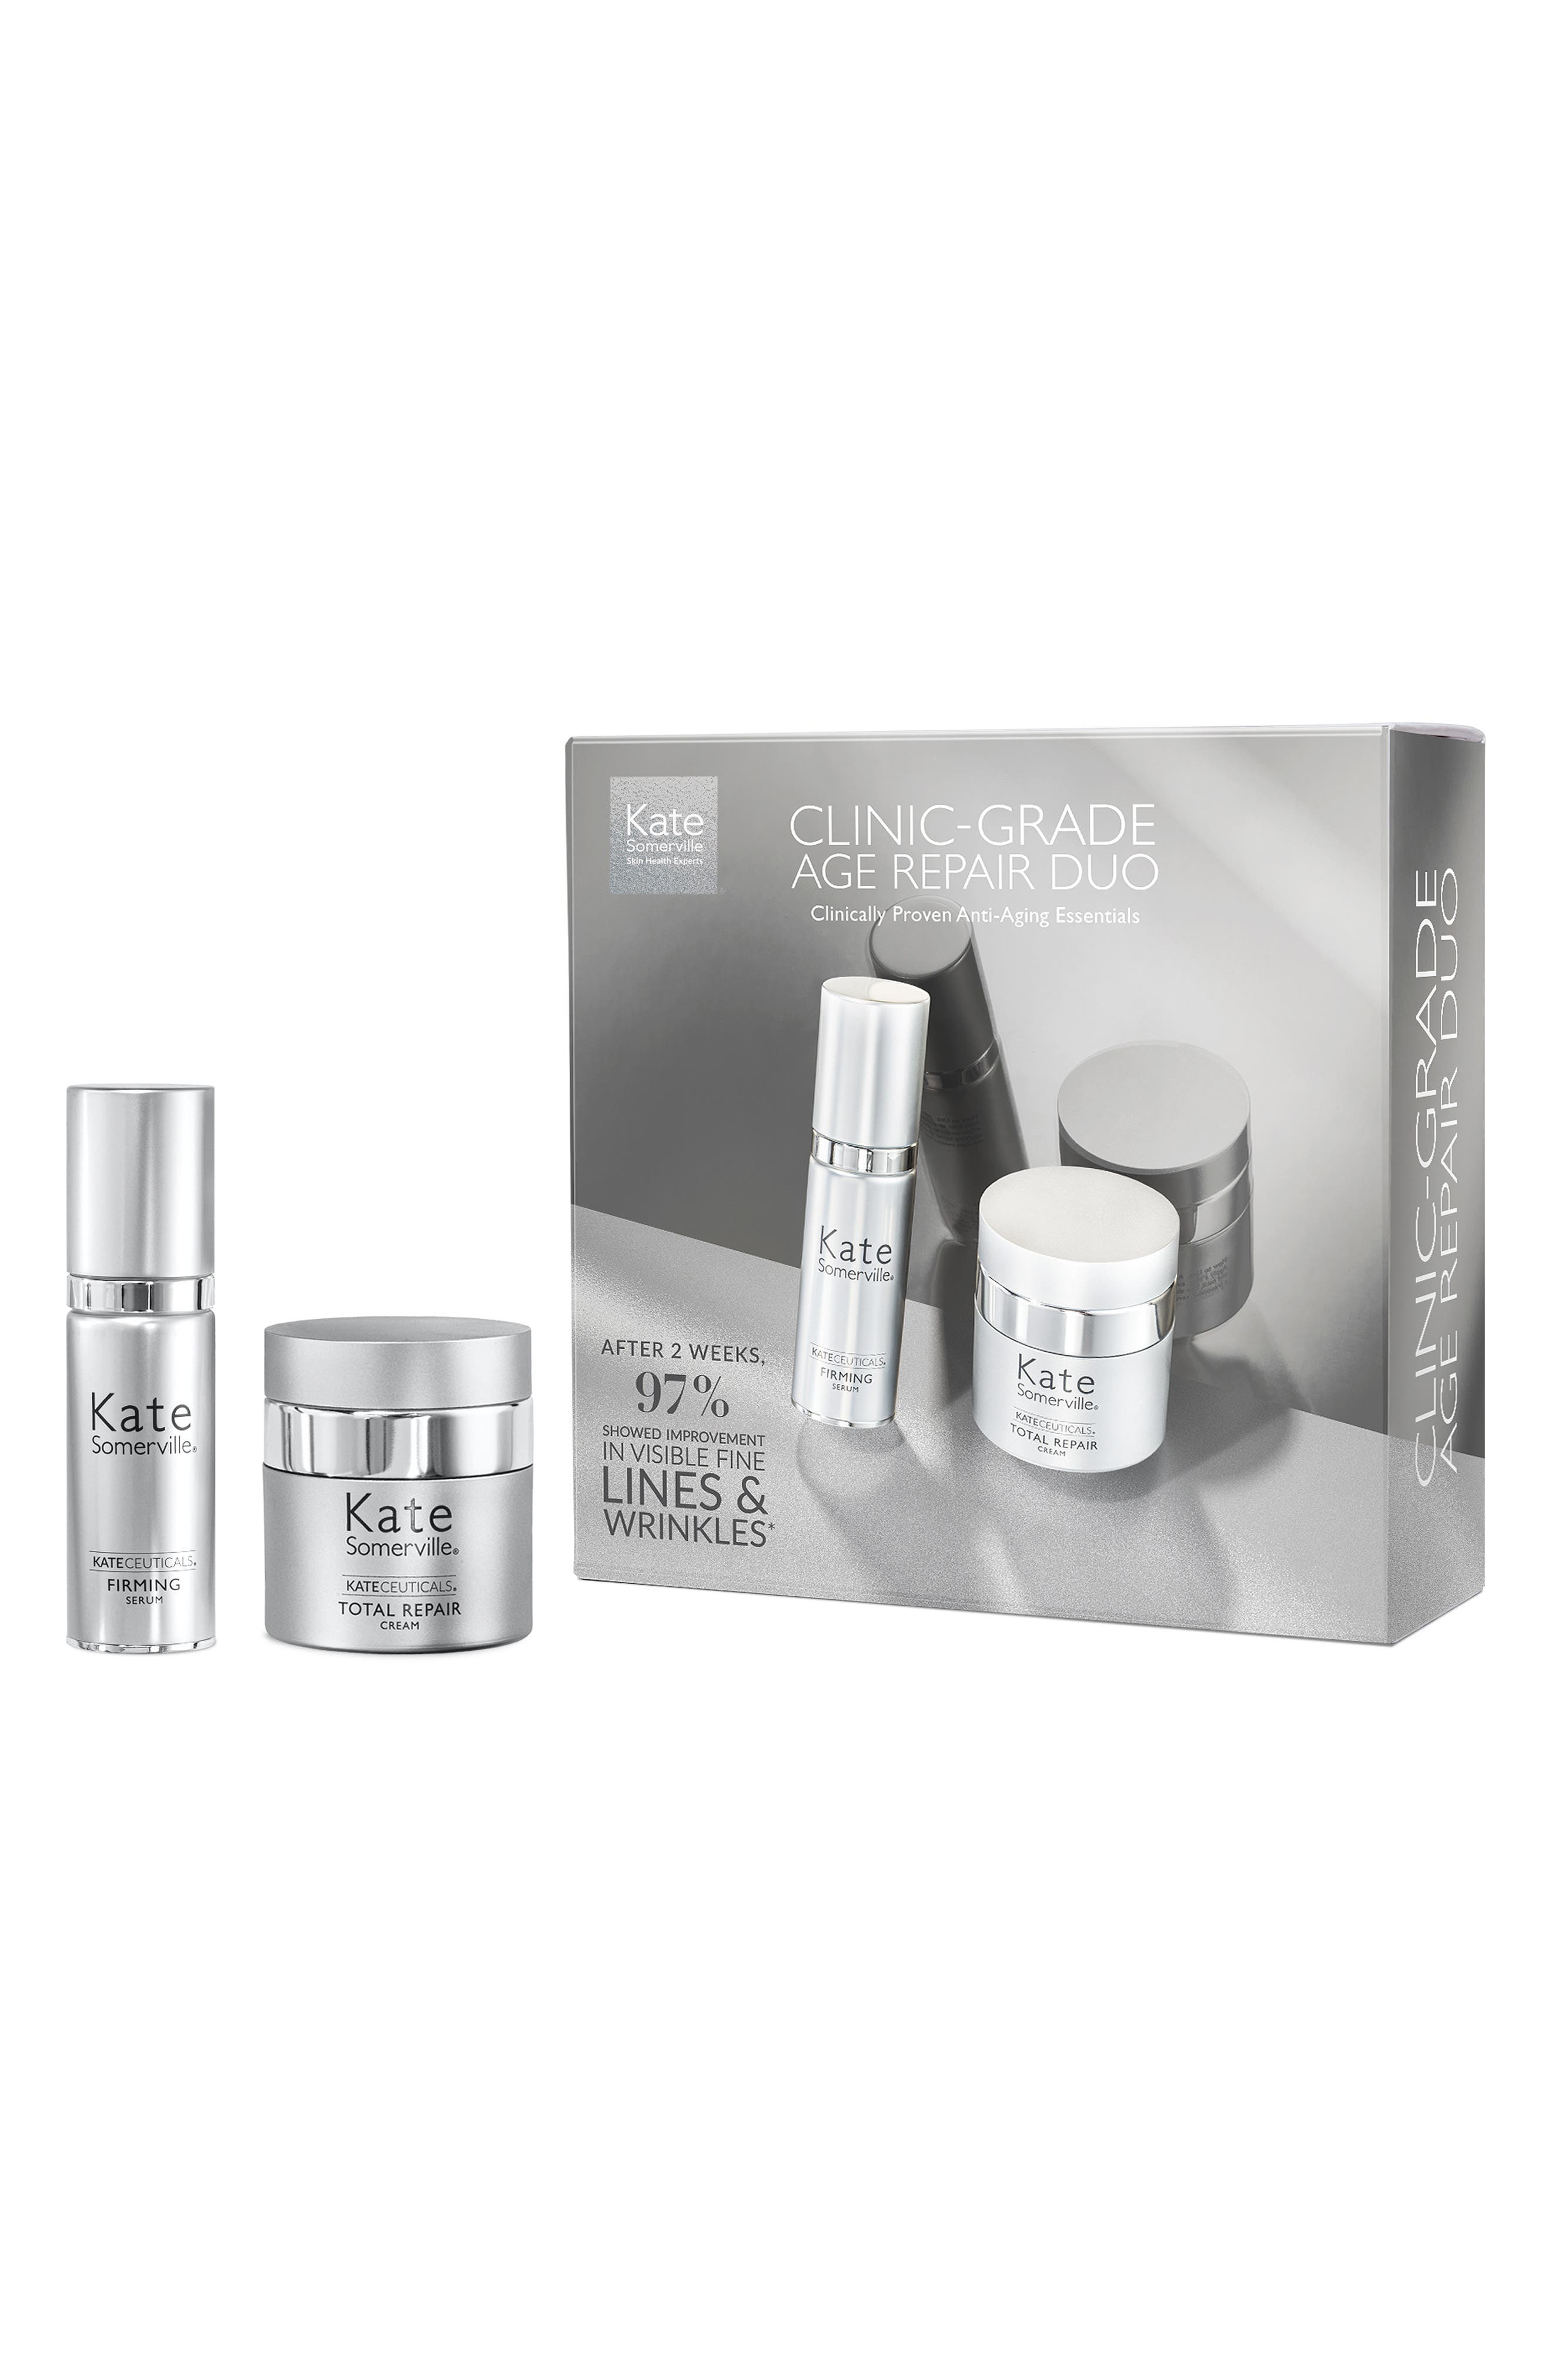 Kate Somerville Full Size Kateceuticals Clinical Age Repair Duo (Nordstrom Exclusive) (USD $218 Value)